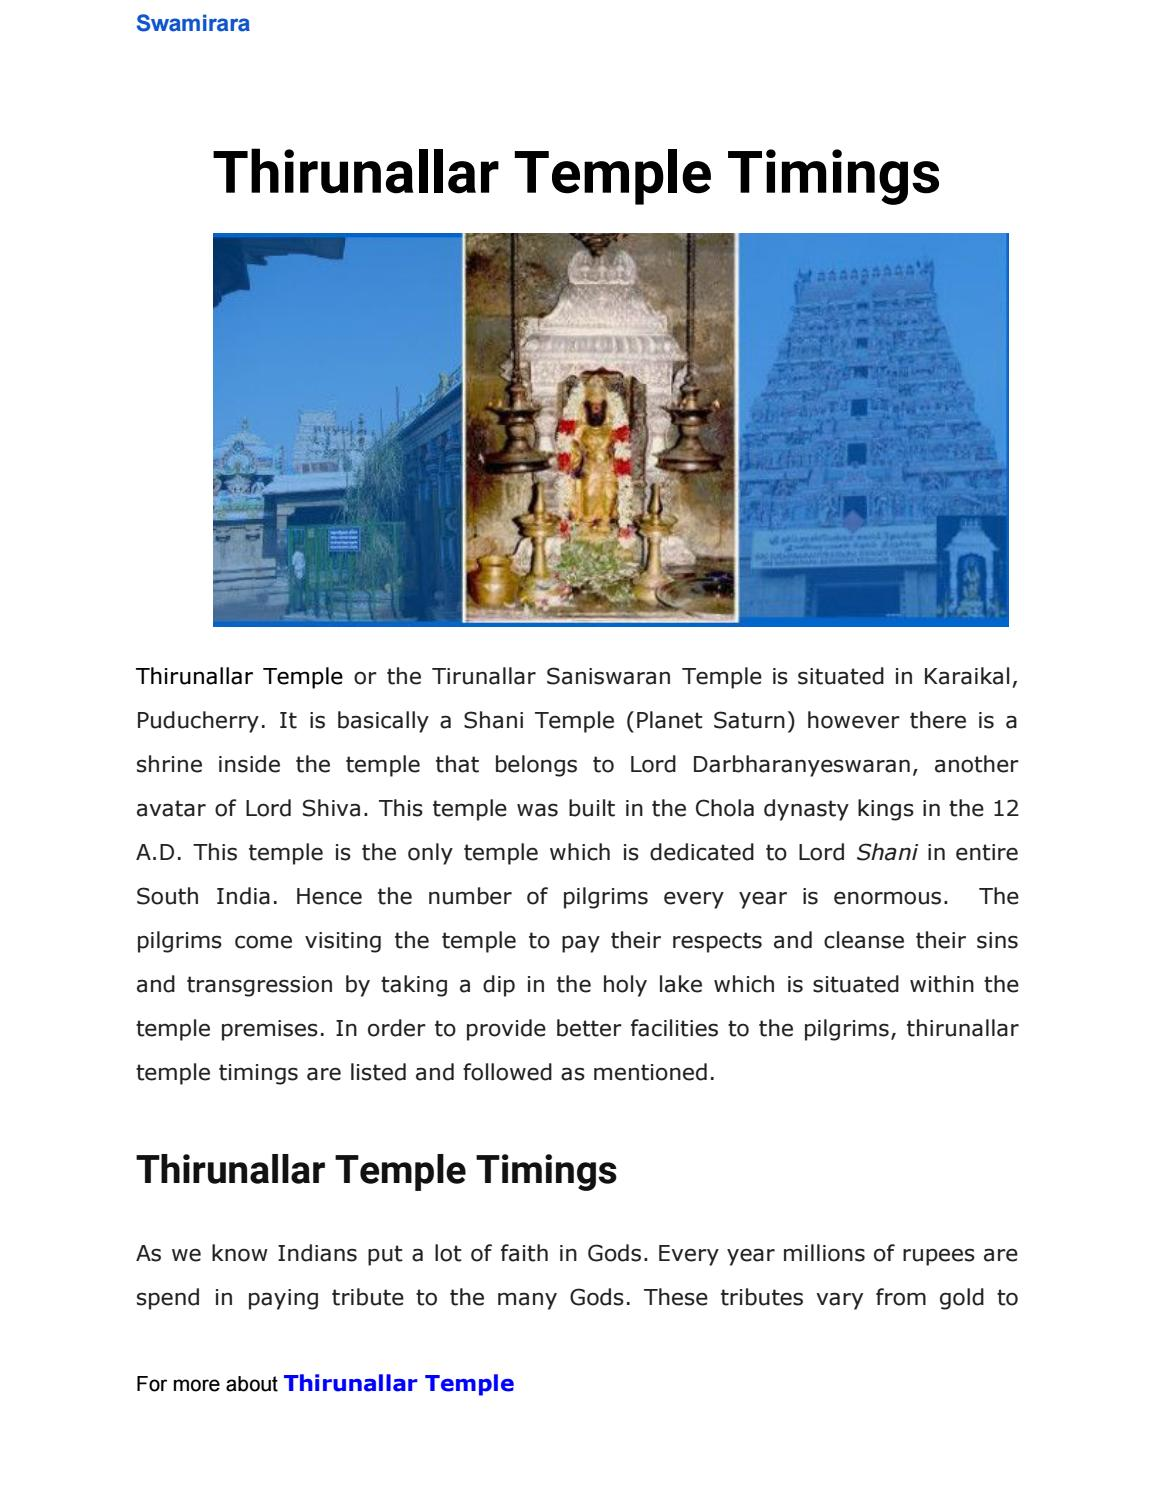 Thirunallar temple timings by sandeep kommineni - issuu